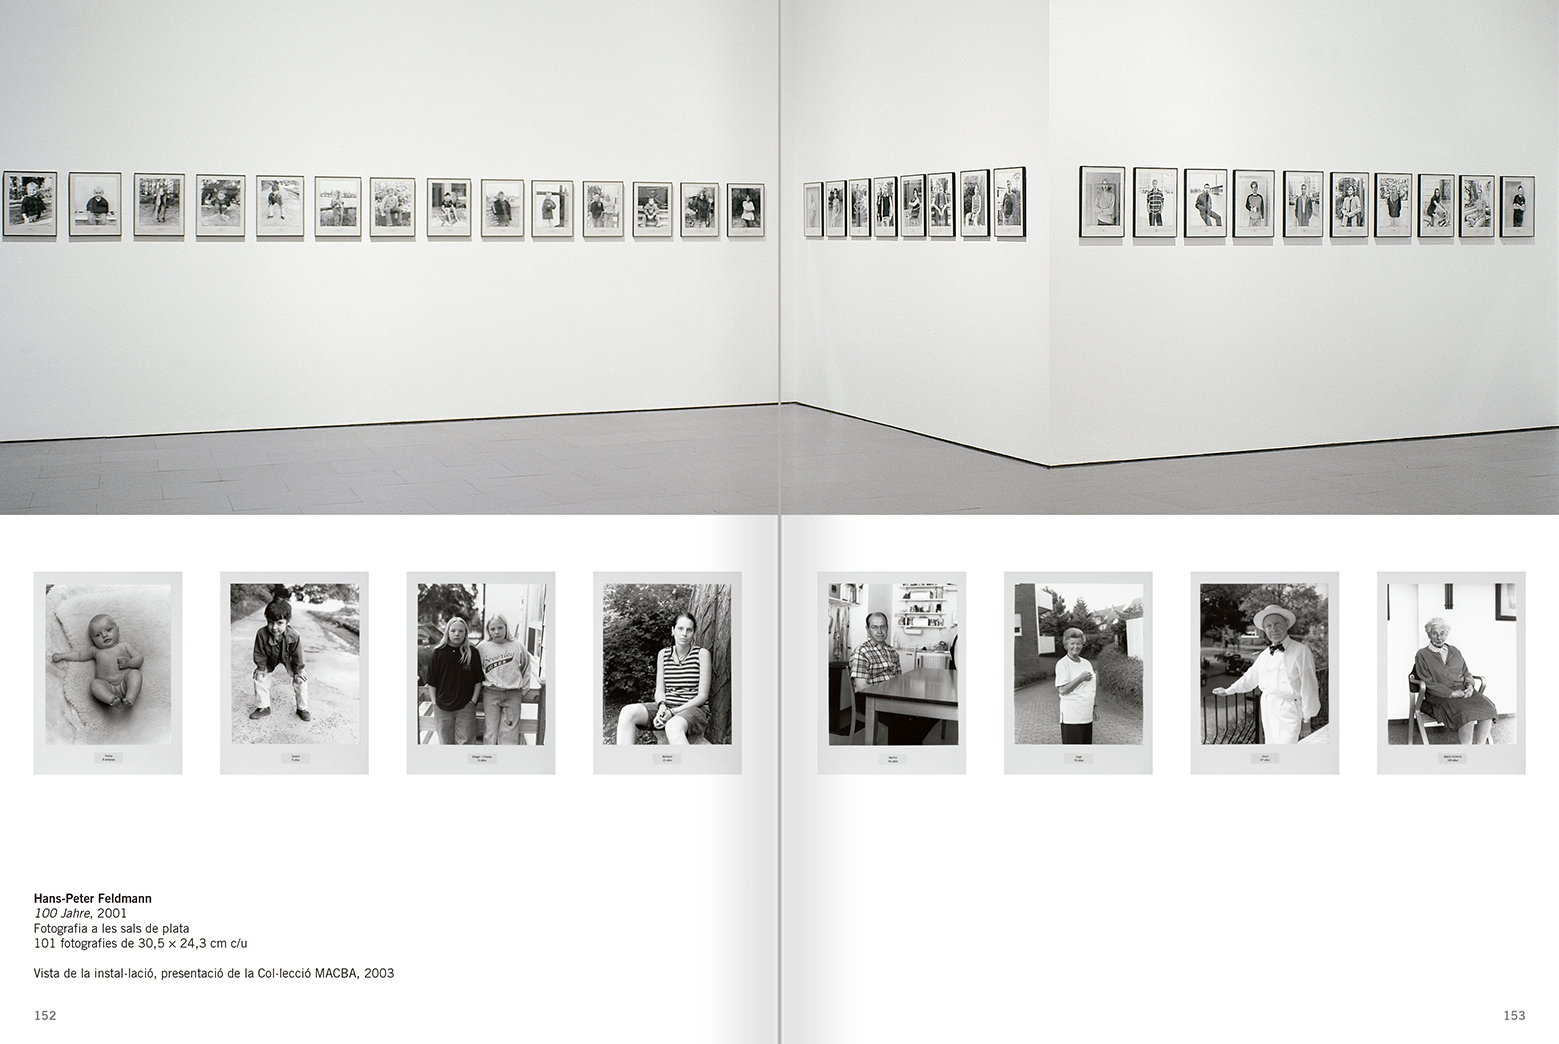 Selection from the catalogue 'Relational Objects. MACBA Collection 2002-07', pages 152 and 153